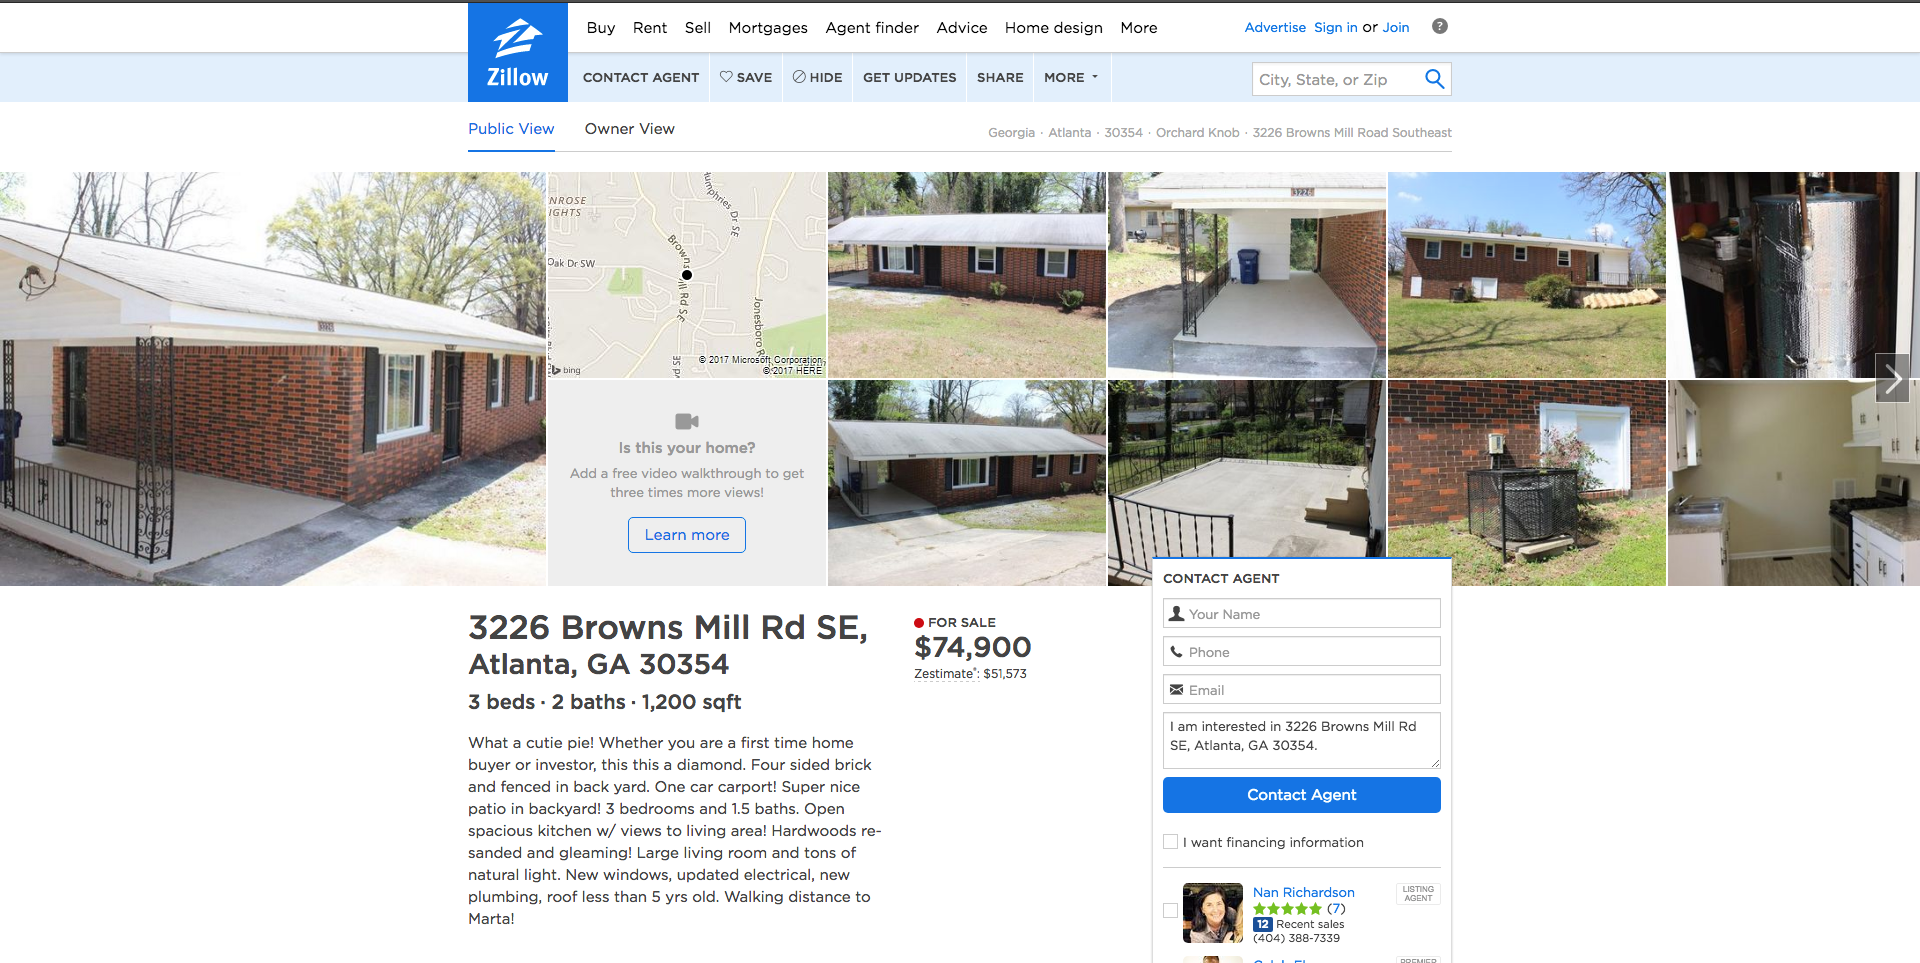 Zillow For Fun & Profit: How to find real estate investments